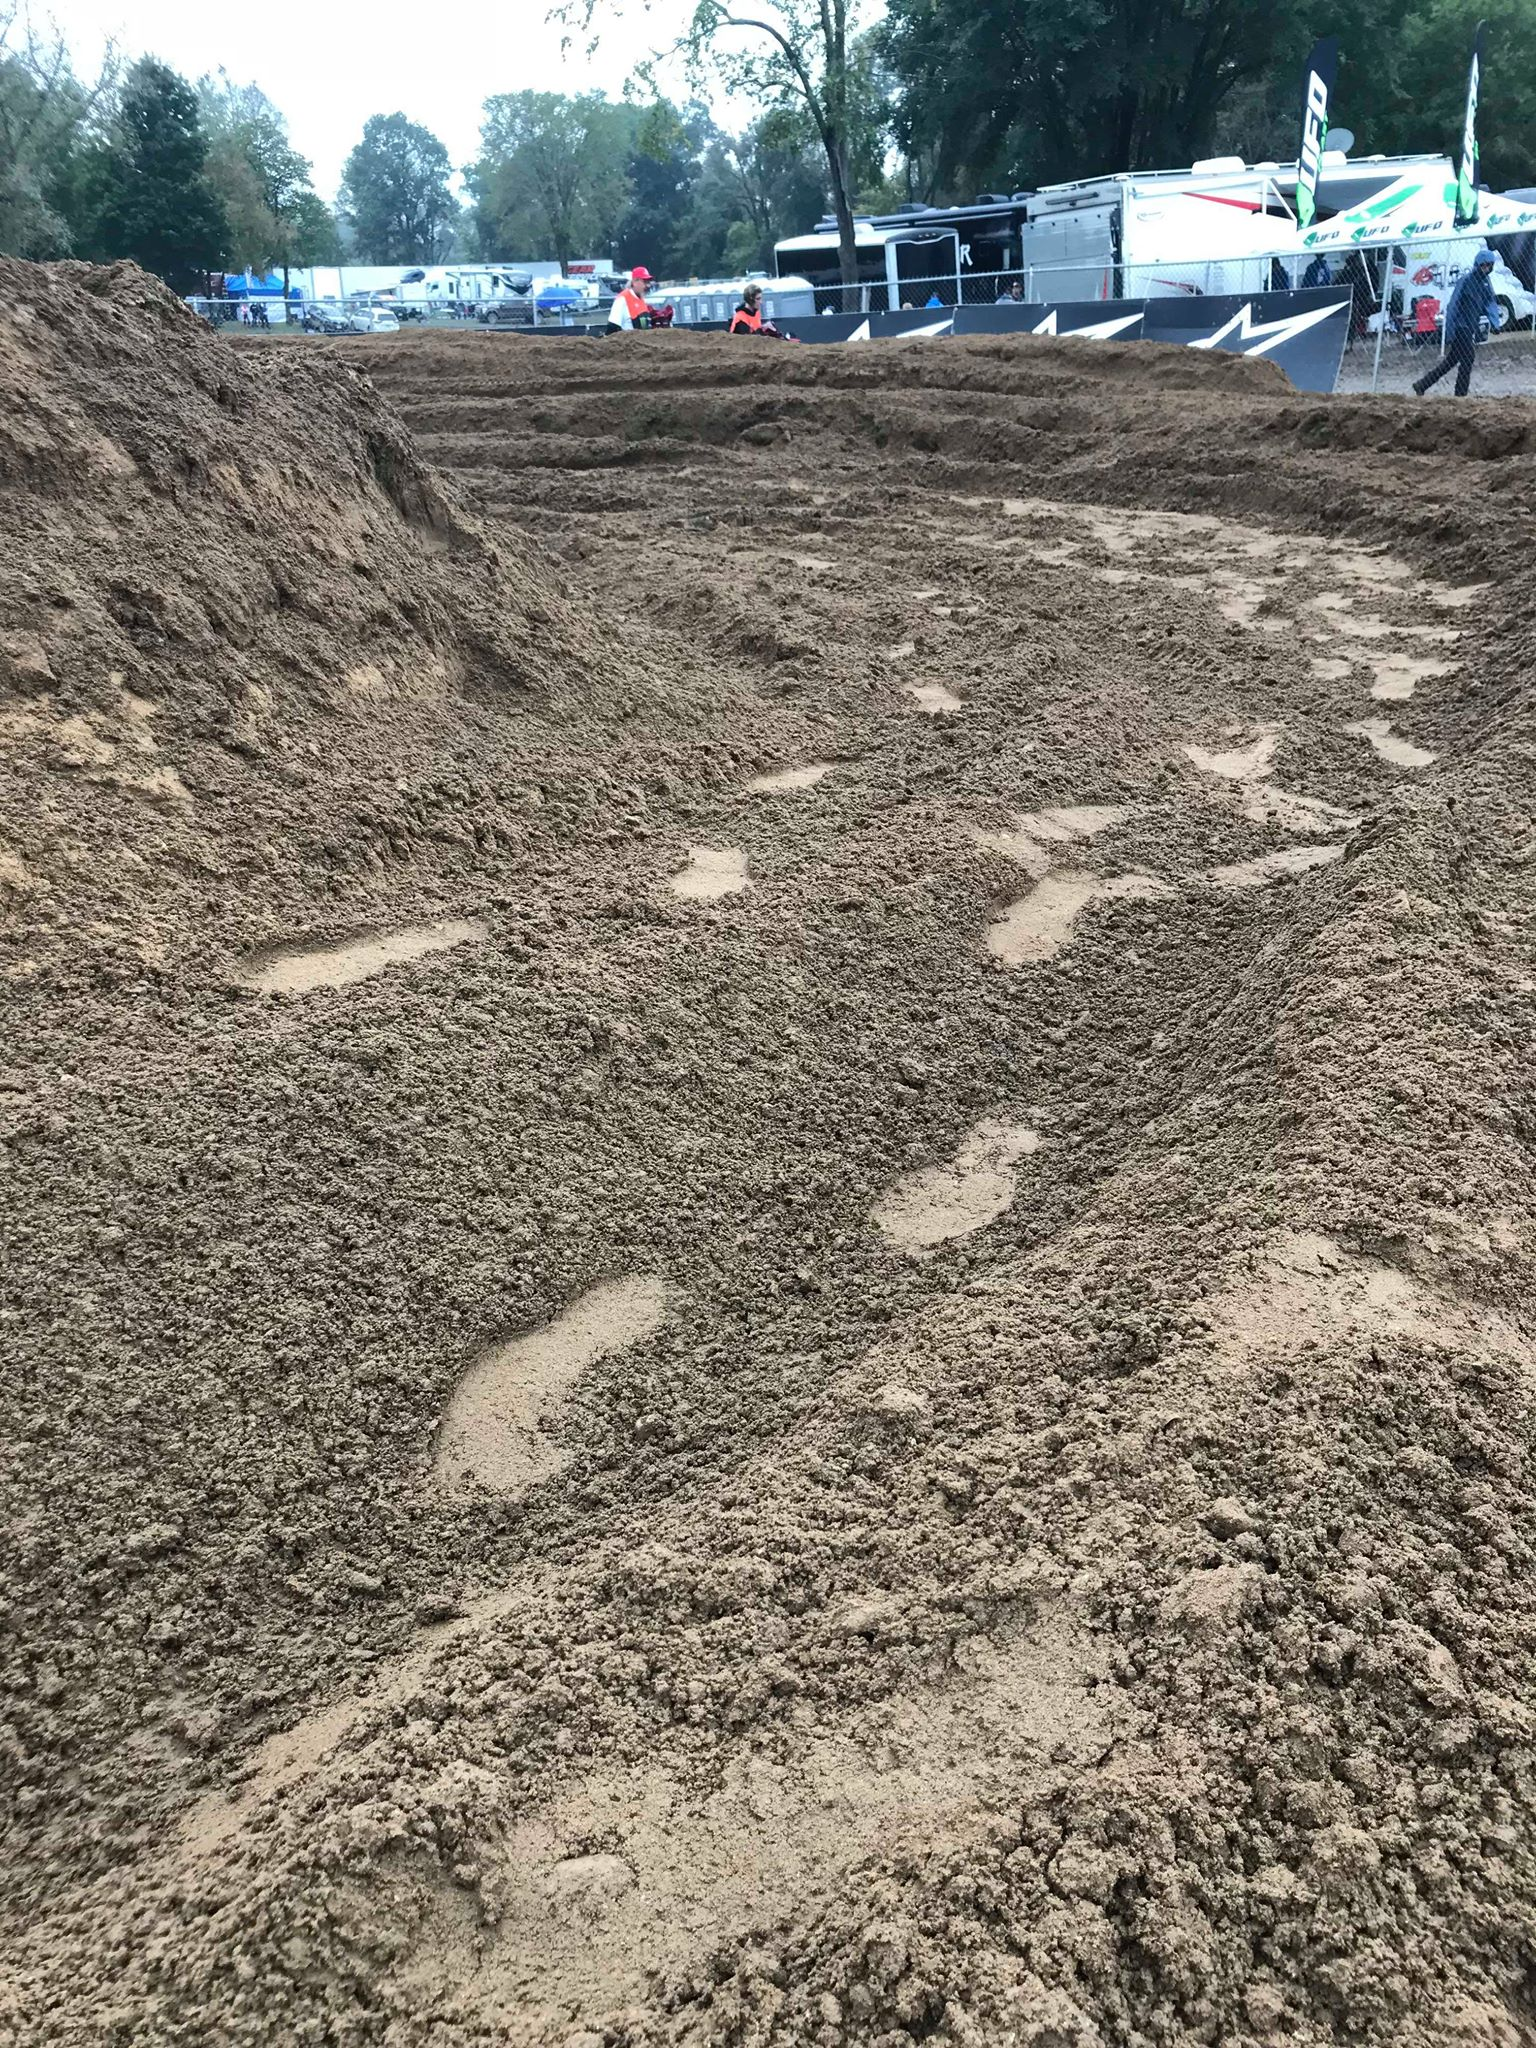 The lines at the Red Bud MXDN were a bit unique compared to a typical MX National. The dirt was a nice mixture of top soil and sand which held up well against the elements and created many lines prime for railing.